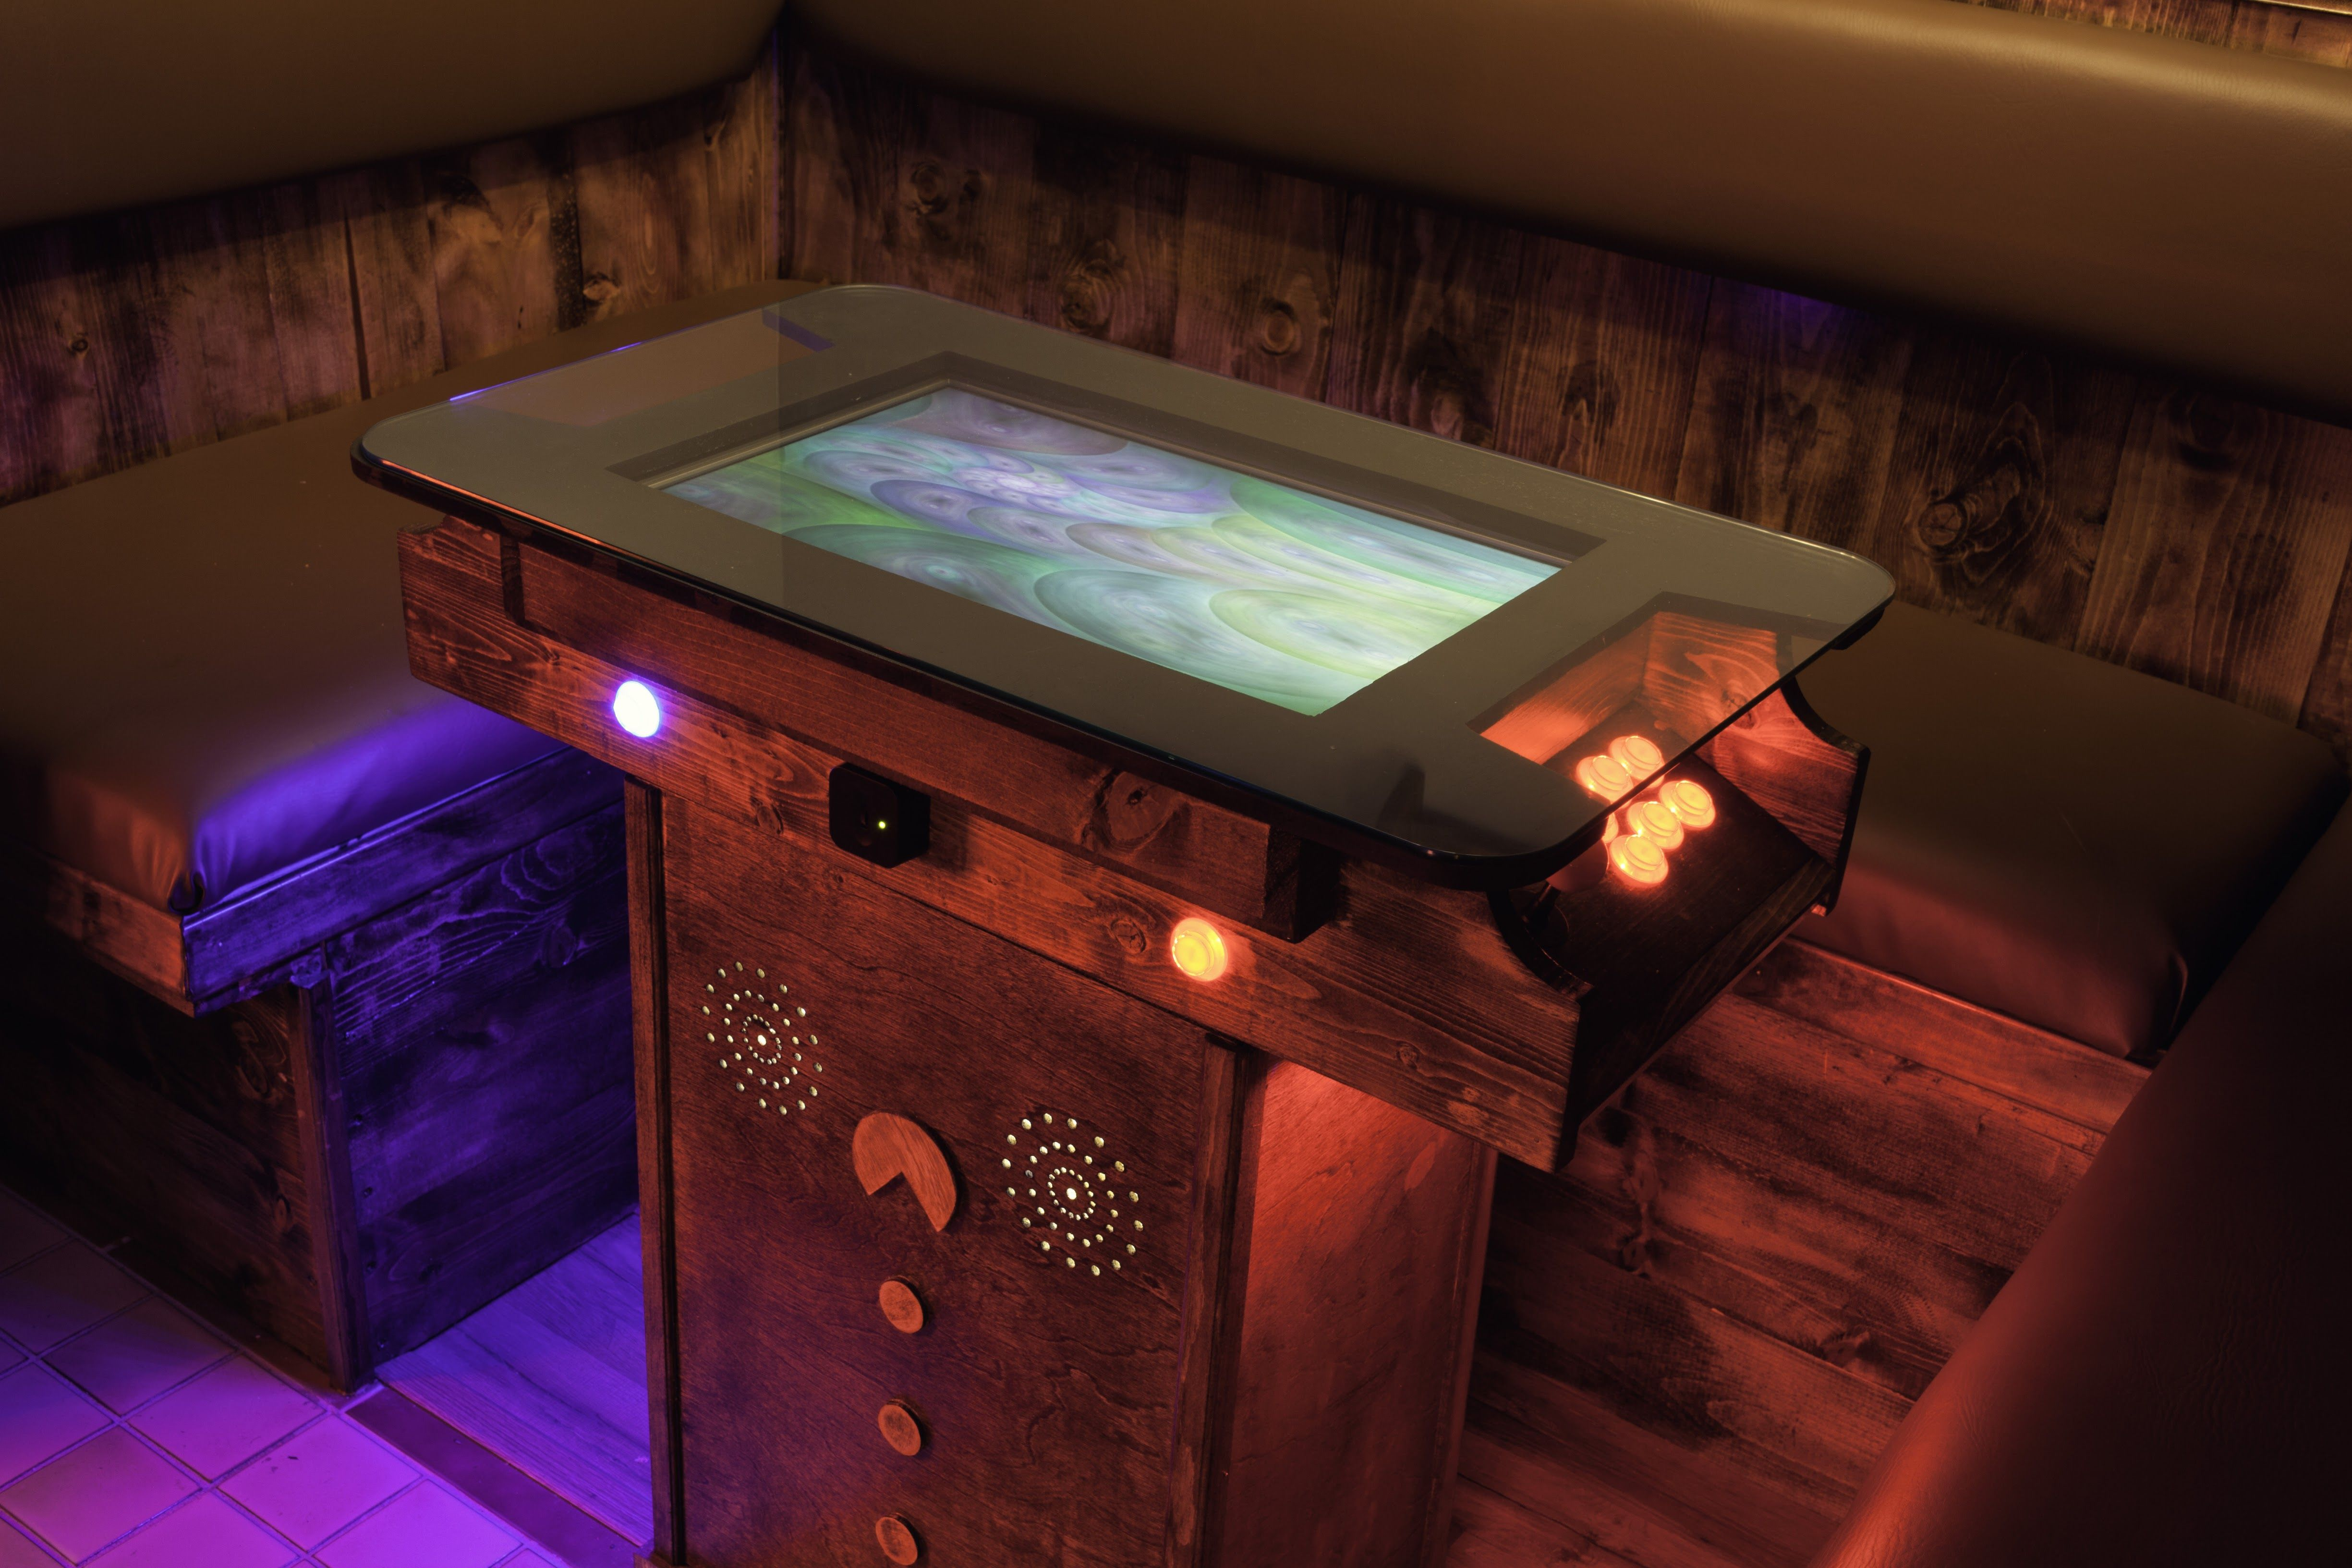 Custom DIY Cocktail Arcade Table and Booth via Reddit user